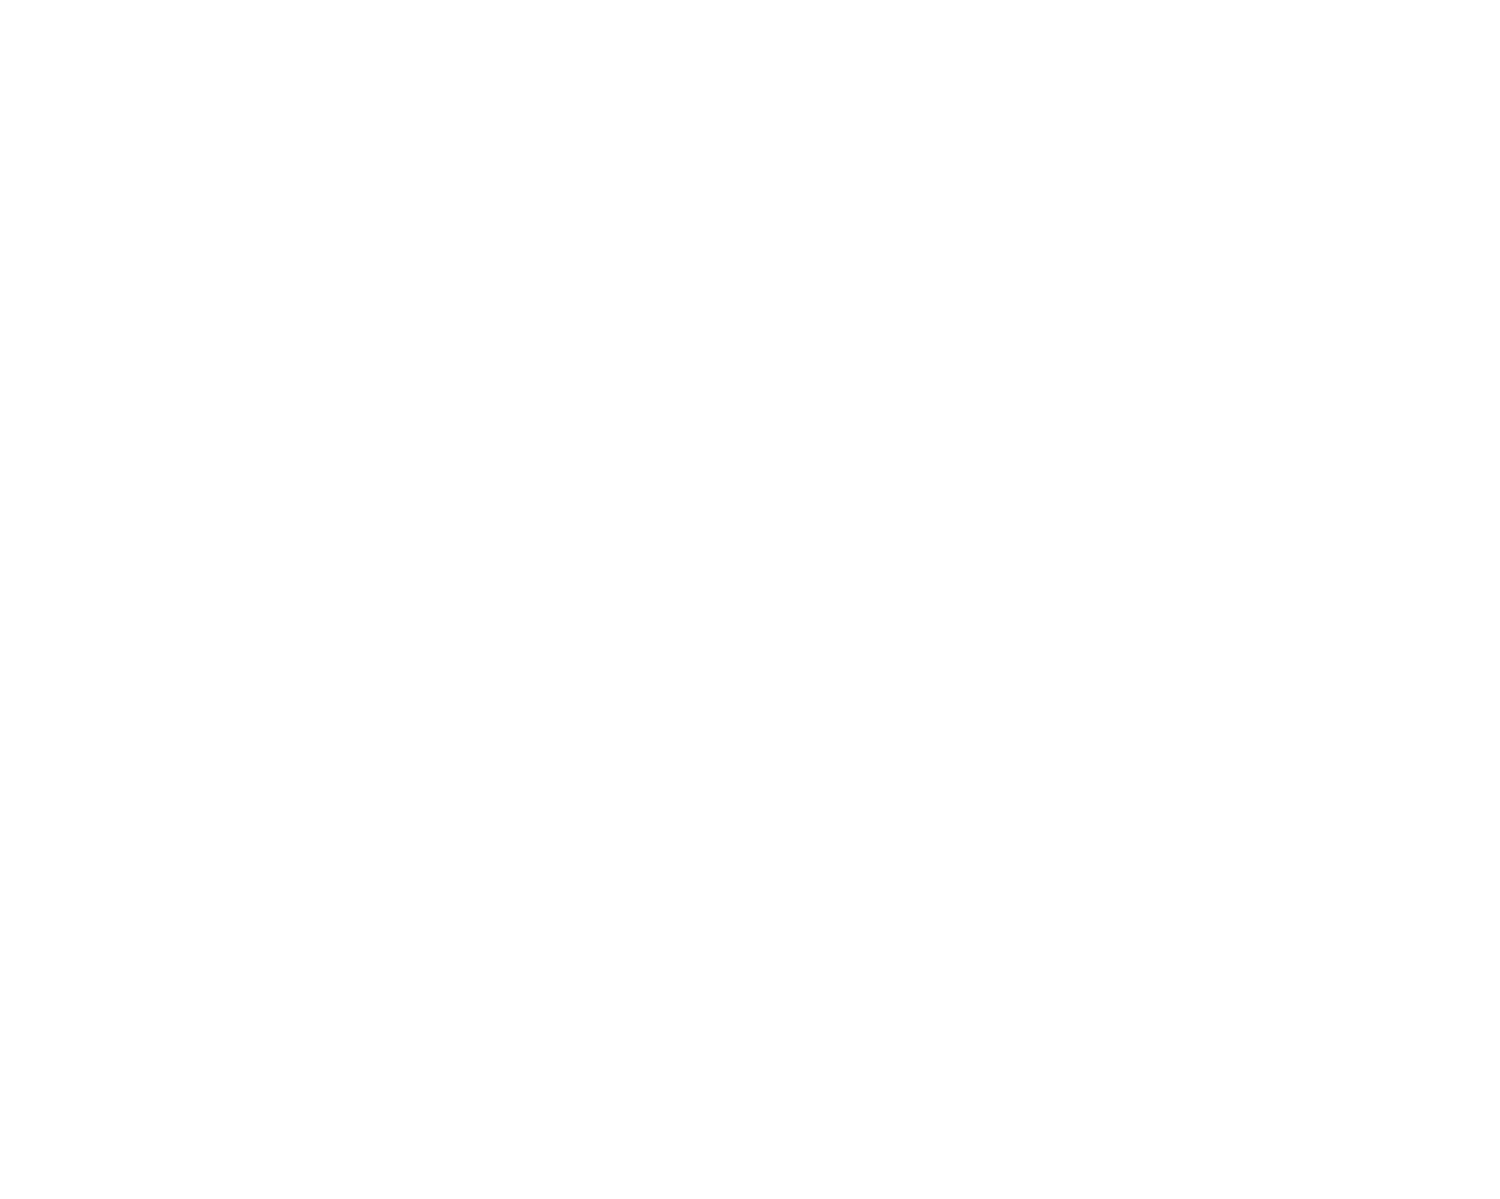 Inspired Retreats